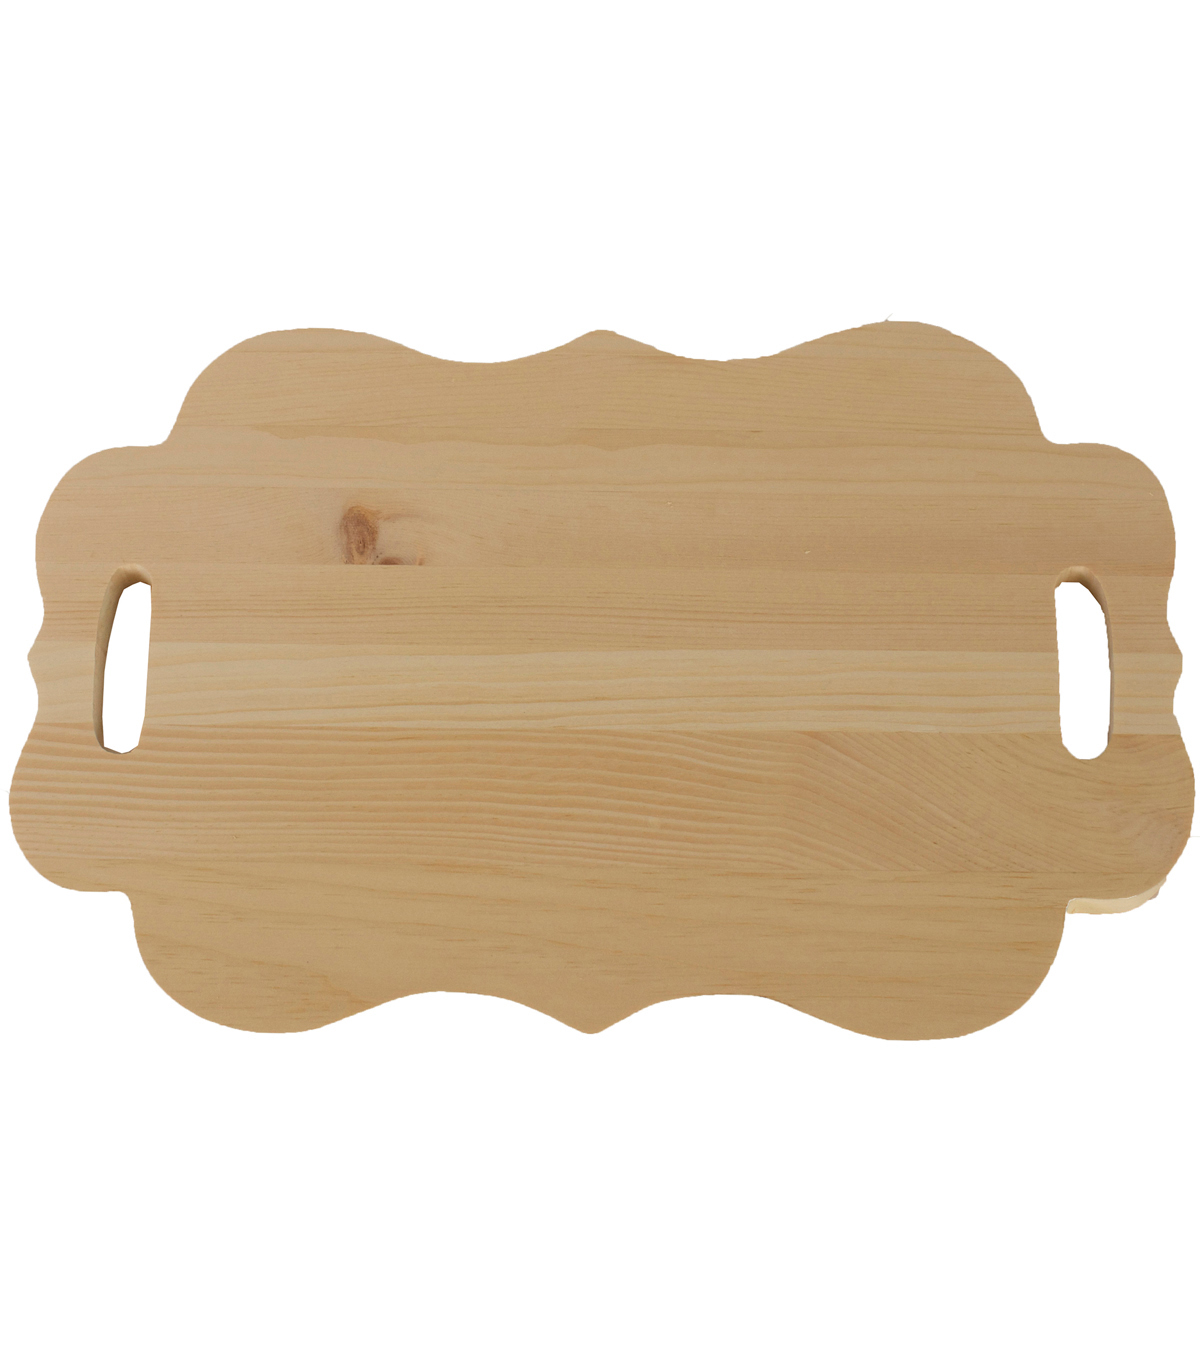 Walnut Hollow Serving Board, Scallop